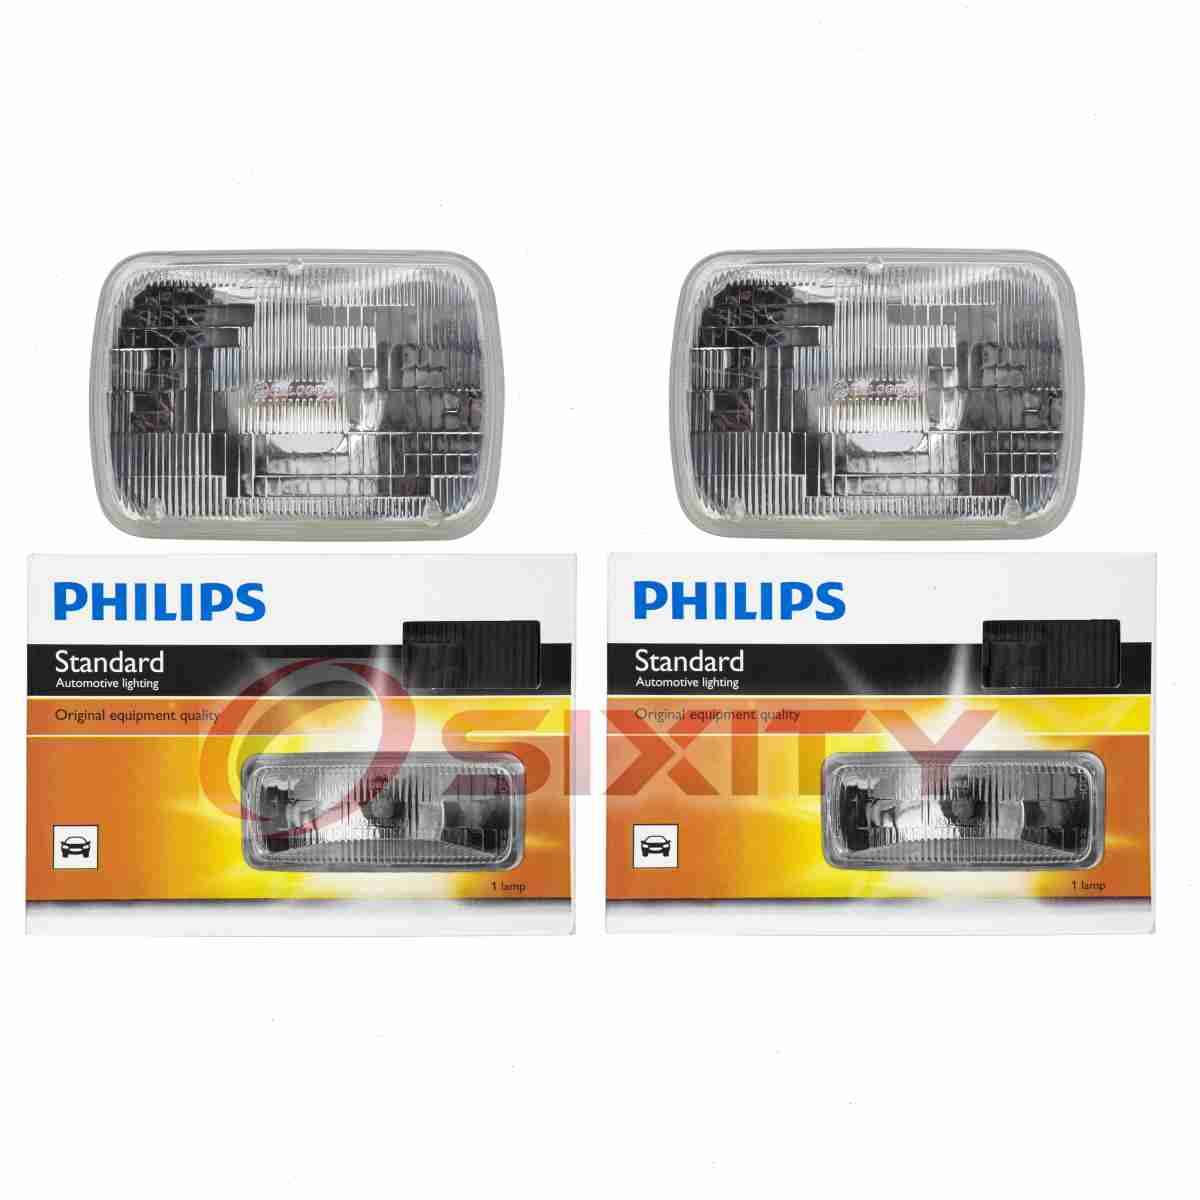 Philips Low Beam Headlight Light Bulb for Toyota 4Runner Tacoma Prius C mt Car & Truck Parts